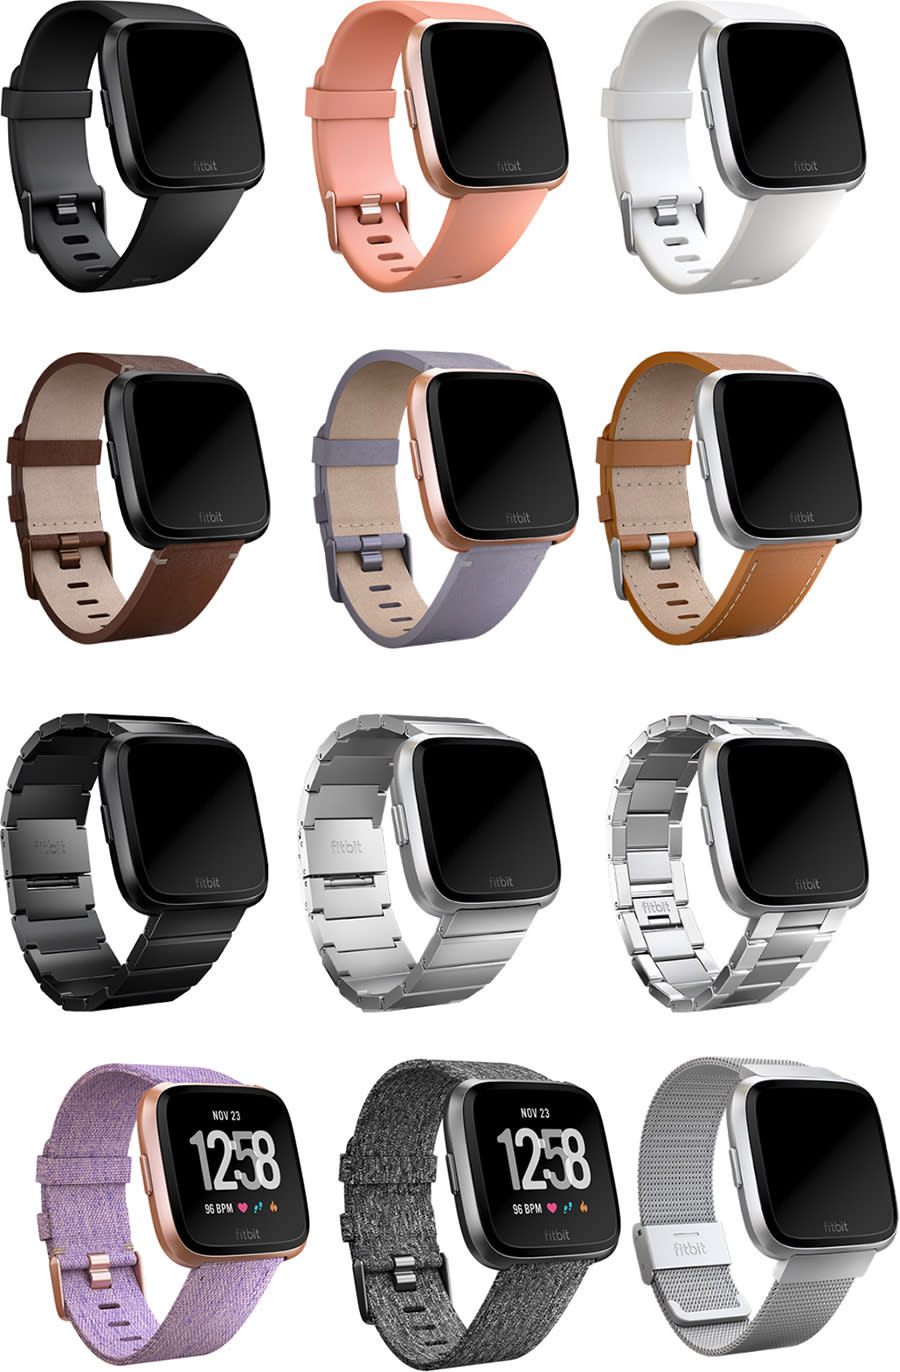 Here's a sampling of some of the silicone, leather, cloth, and metal bands available.